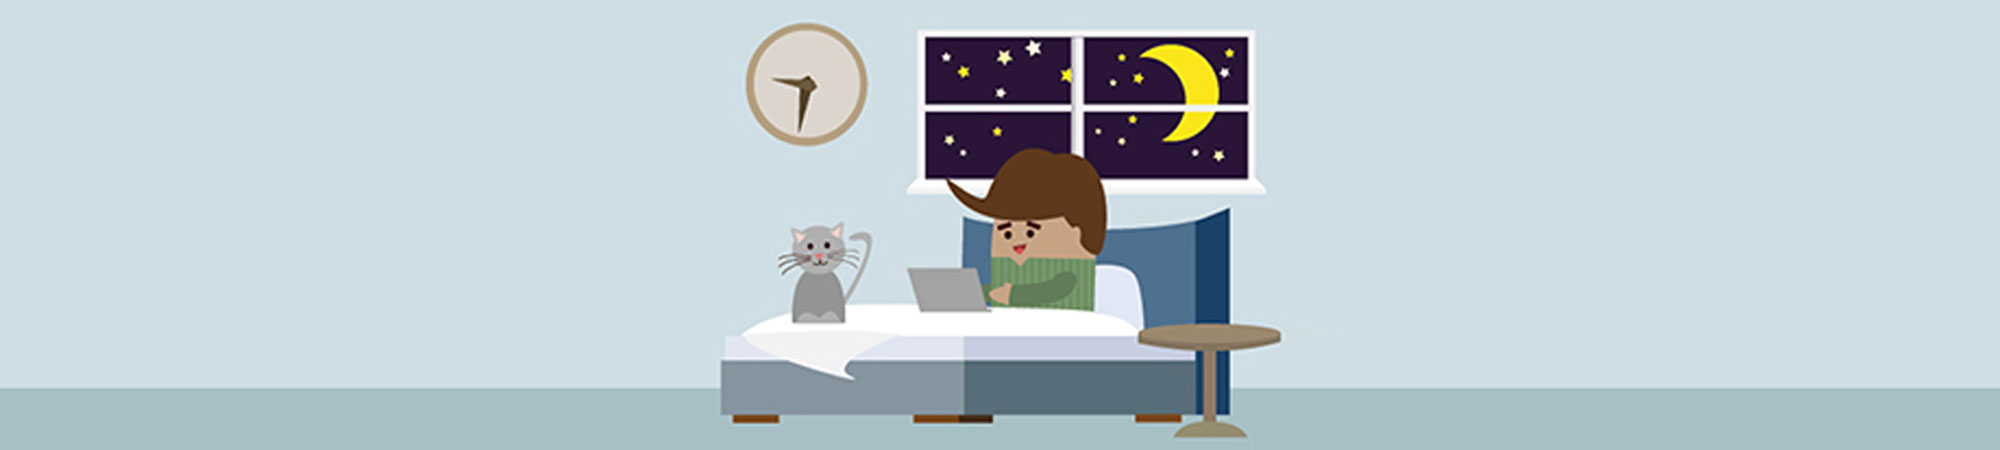 6 things you can do every night before bed to find a new for New stuff to do in bed